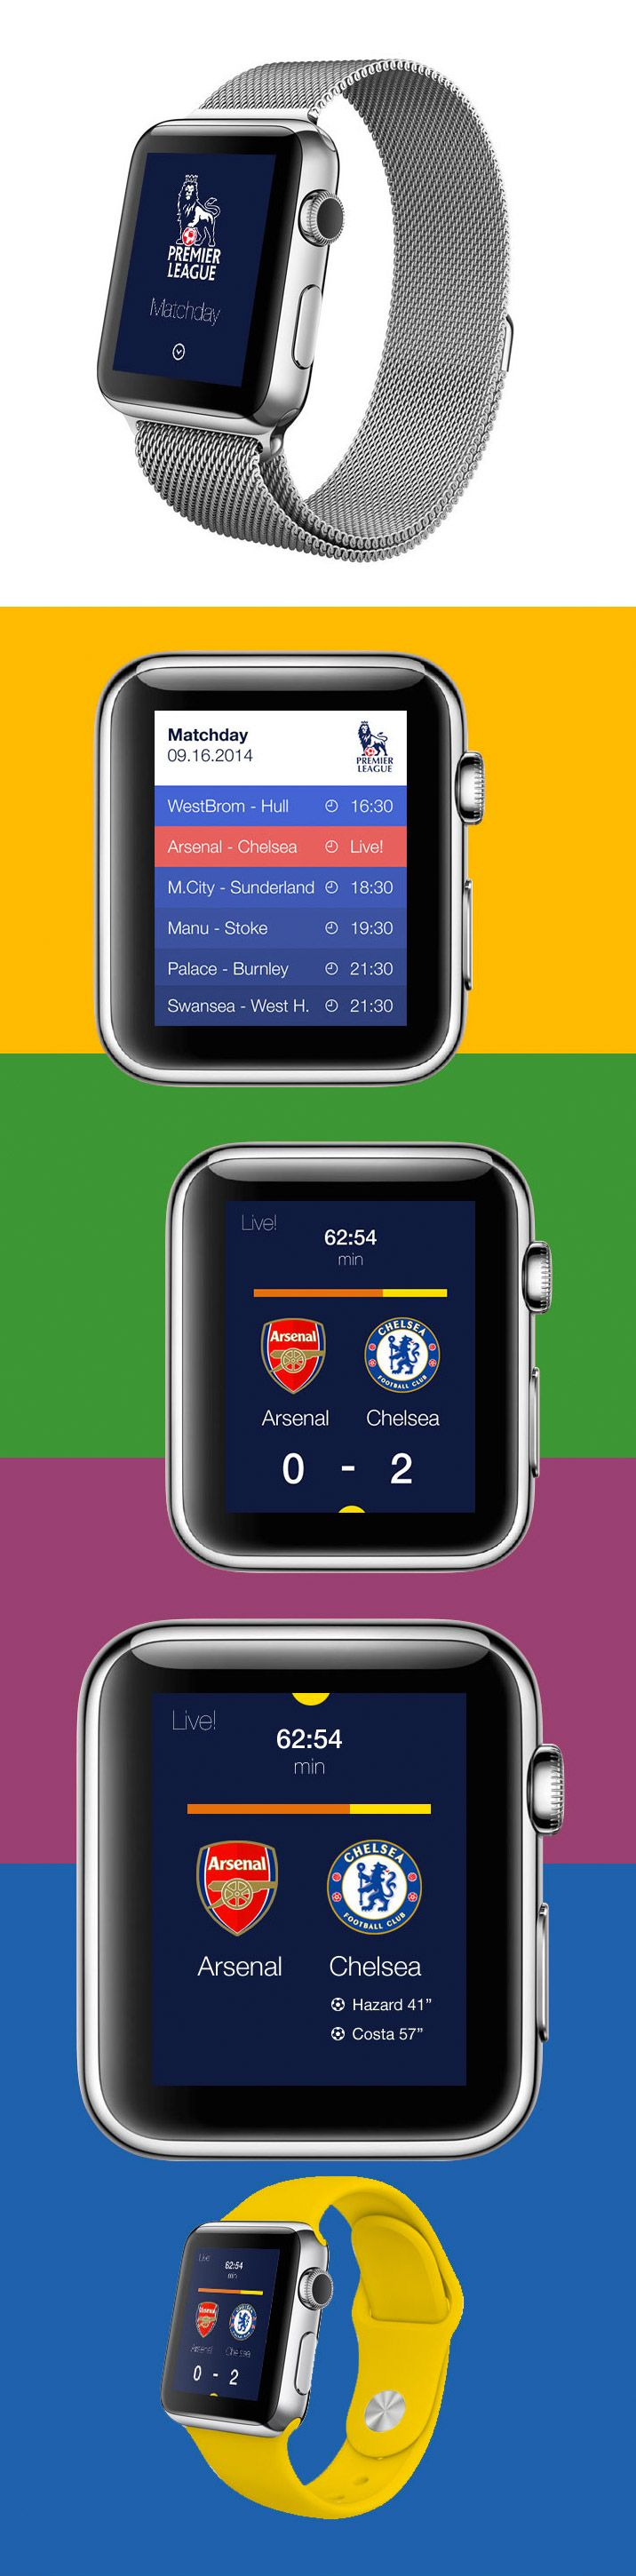 Apple Matchday smartwatch UI http://www.cssdesignawards.com/articles/23-smartwatch-ui-designs-concepts/114/